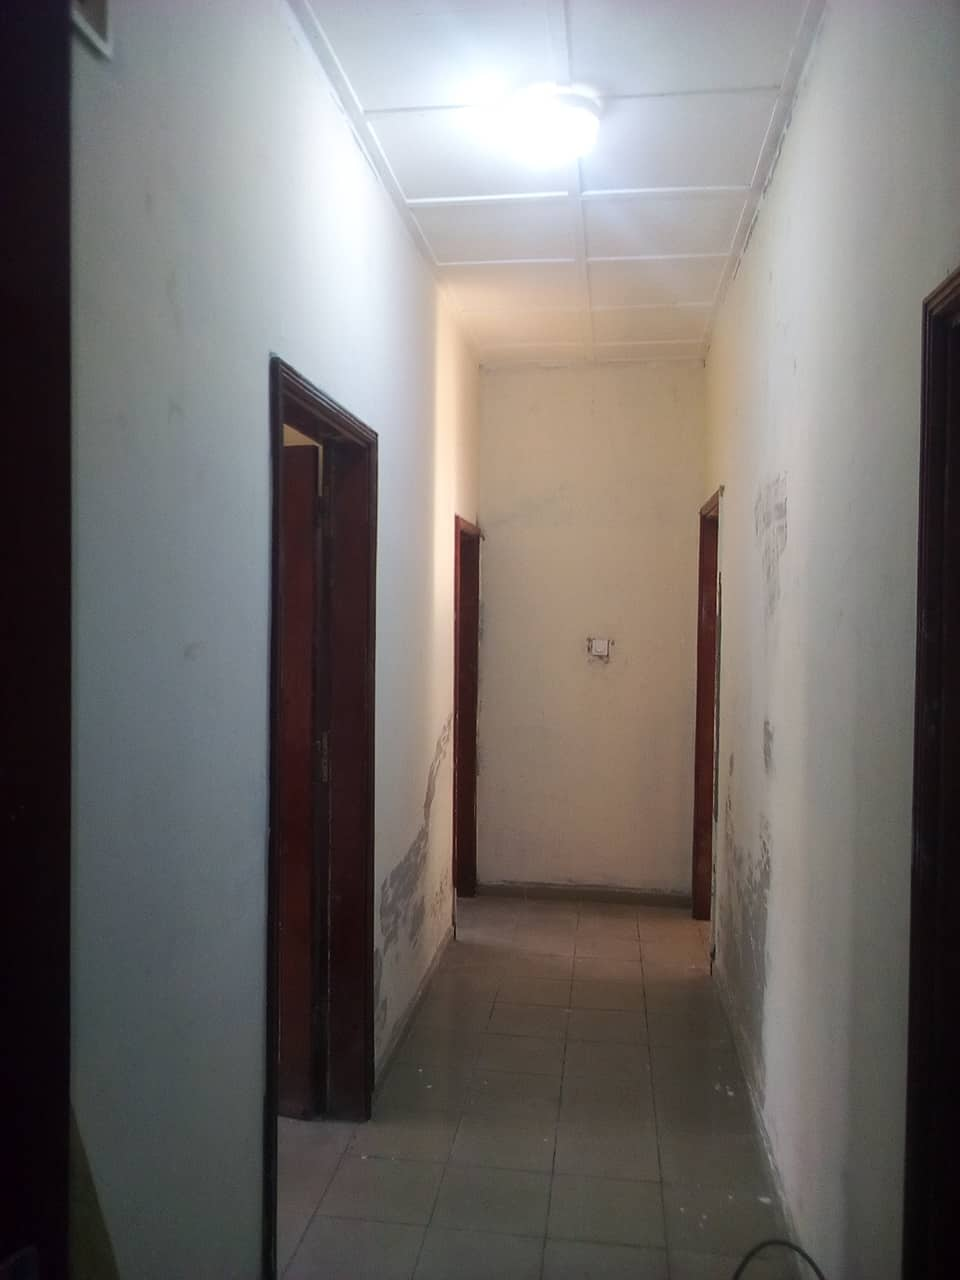 House (Villa) to rent - Yaoundé, Bastos, pas loin de mtn - 1 living room(s), 3 bedroom(s), 2 bathroom(s) - 1 000 000 FCFA / month